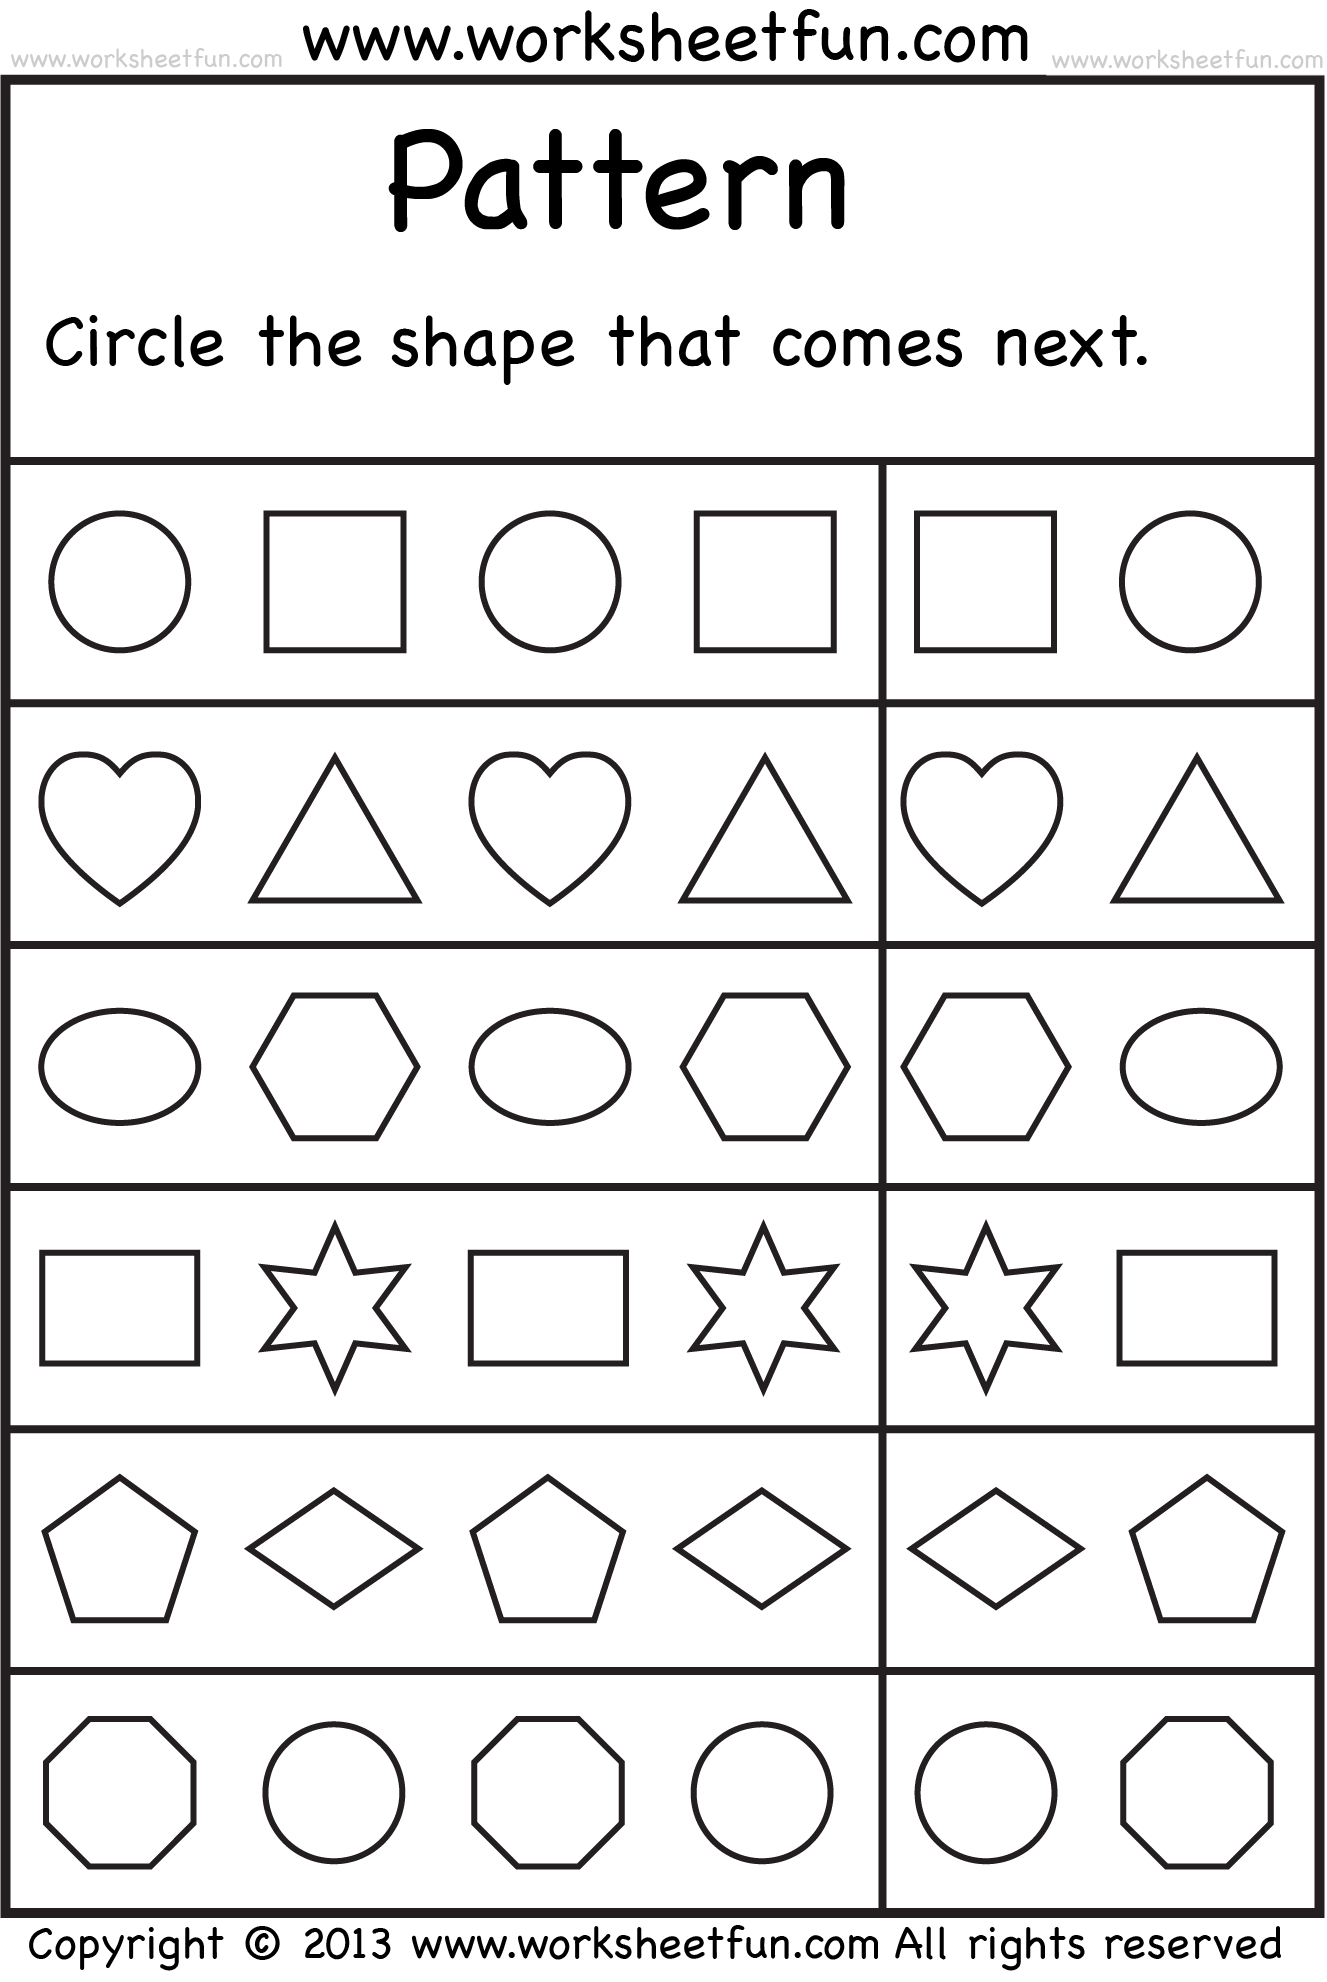 Weirdmailus  Wonderful  Images About School Worksheets On Pinterest  Number Words  With Goodlooking  Images About School Worksheets On Pinterest  Number Words Alphabet Worksheets And Free Printable Kindergarten Worksheets With Beautiful Rate Of Change Worksheets Also Parts Of A Leaf Worksheet In Addition Writing Equations In Point Slope Form Worksheet And Transverse Waves Worksheet Answers As Well As Decision Making Worksheet Additionally Rearranging Equations Worksheet Answers From Pinterestcom With Weirdmailus  Goodlooking  Images About School Worksheets On Pinterest  Number Words  With Beautiful  Images About School Worksheets On Pinterest  Number Words Alphabet Worksheets And Free Printable Kindergarten Worksheets And Wonderful Rate Of Change Worksheets Also Parts Of A Leaf Worksheet In Addition Writing Equations In Point Slope Form Worksheet From Pinterestcom